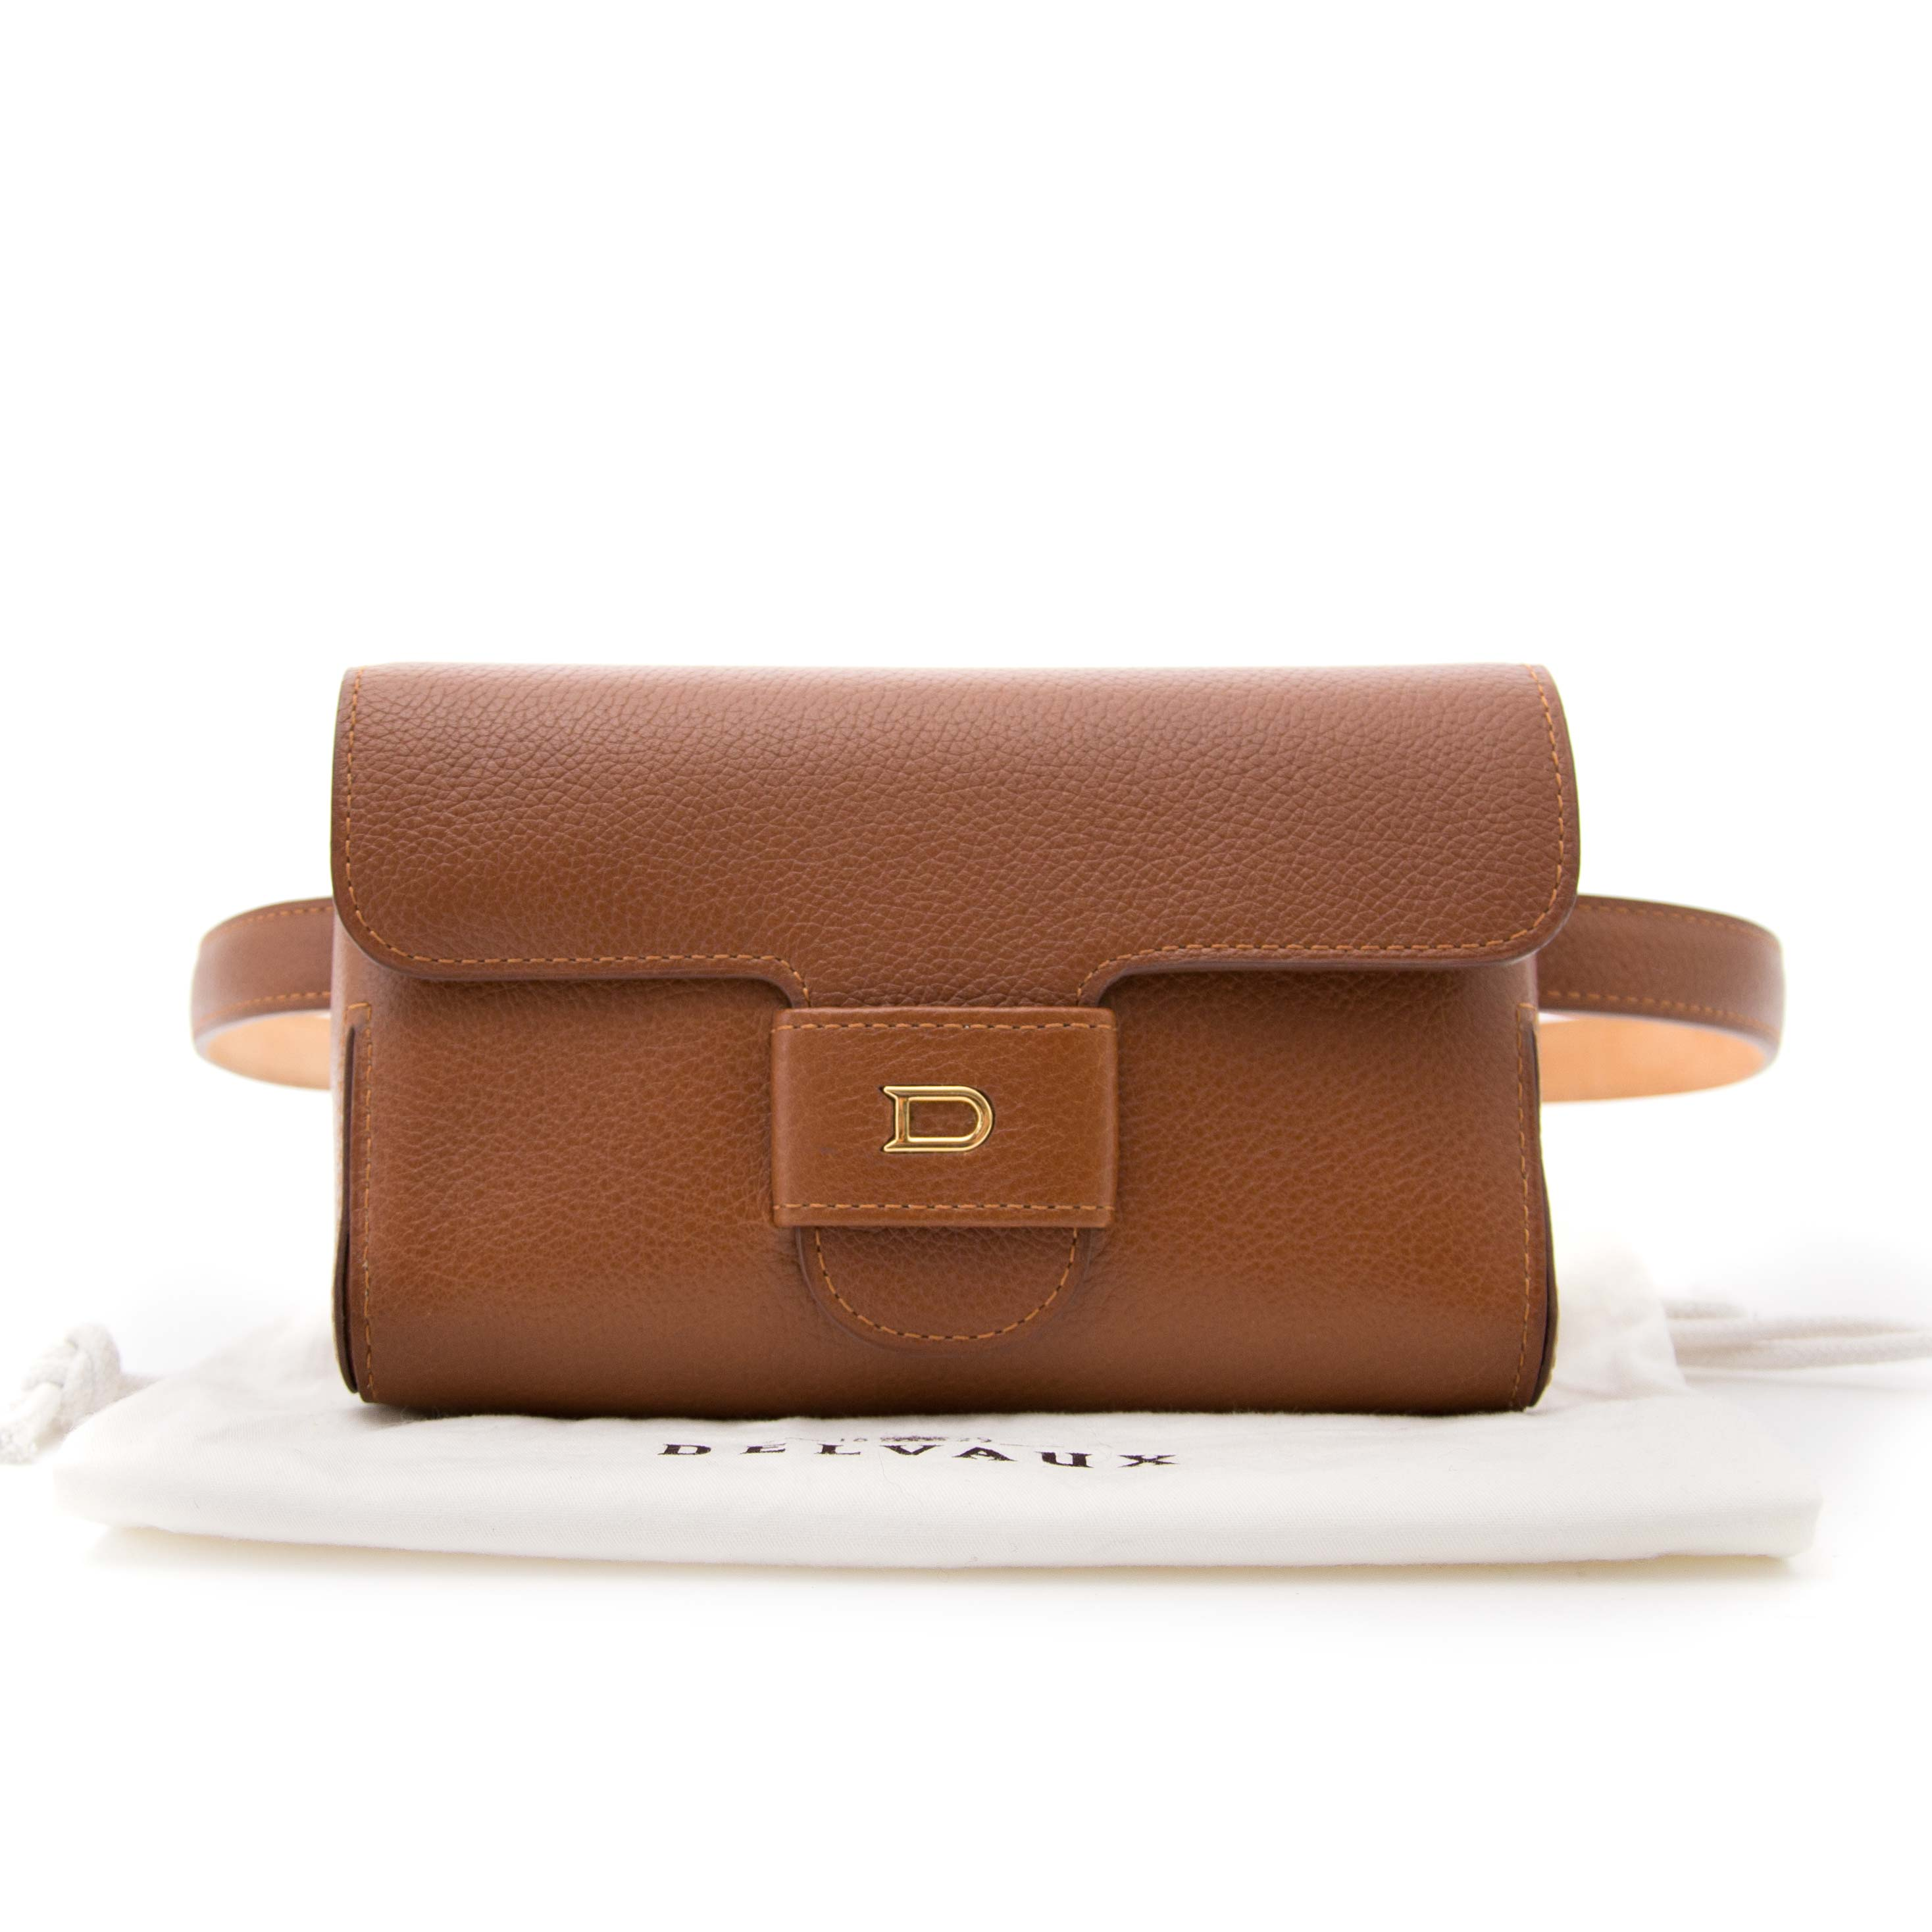 Delvaux Brown leather belt bag now online at labellov.com for the best price